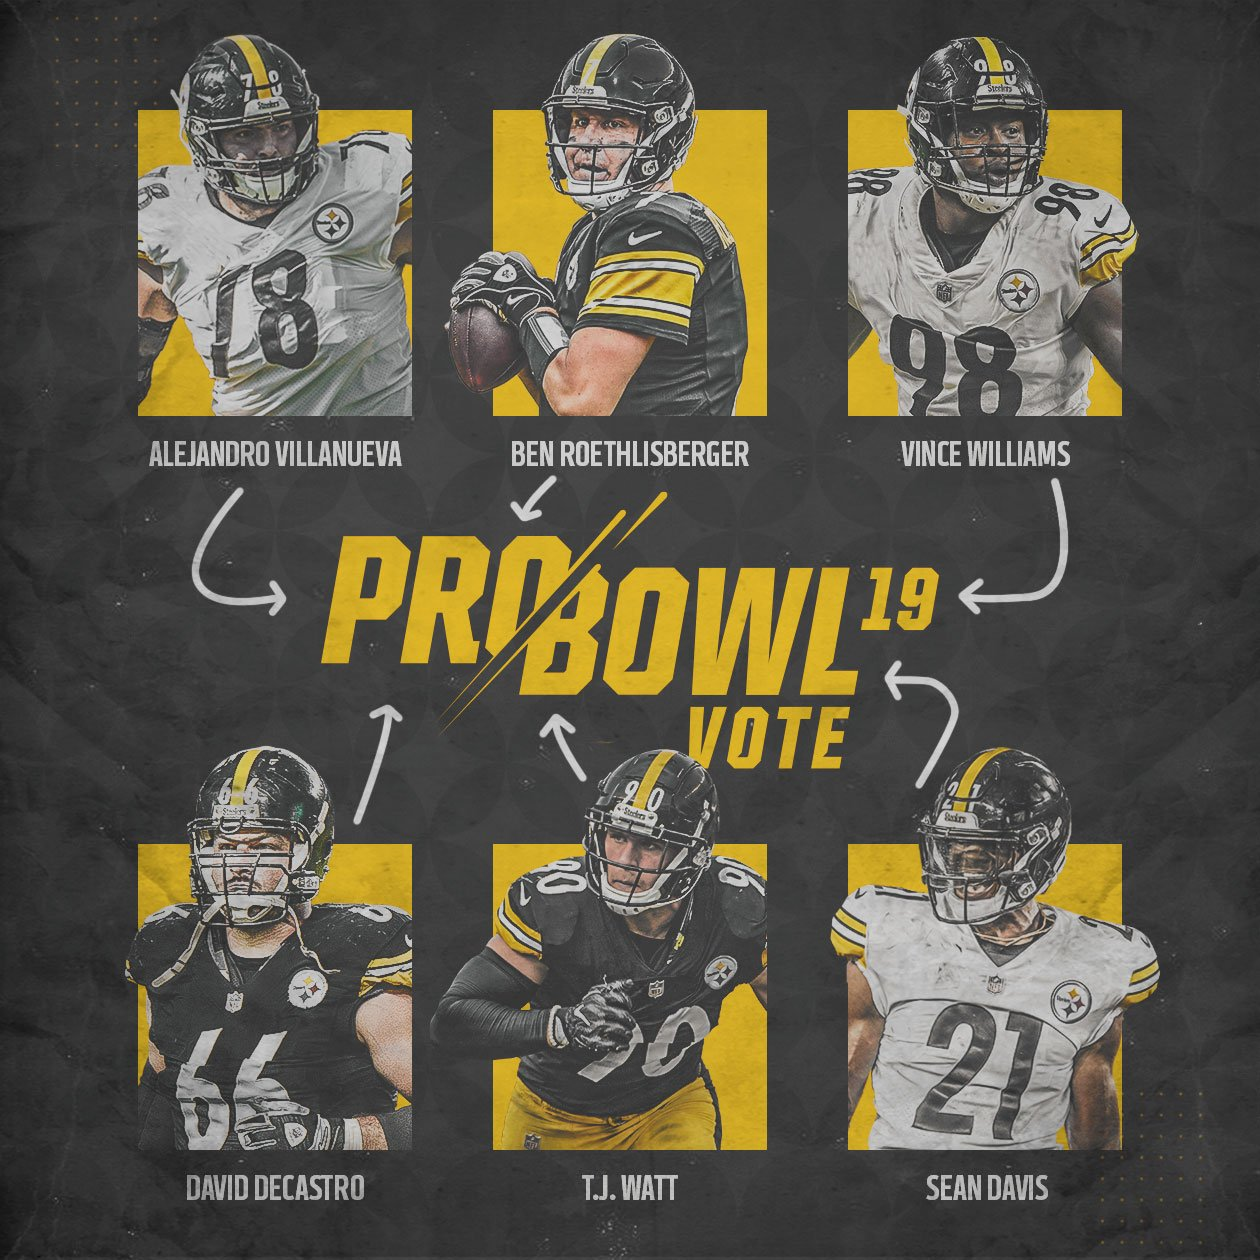 You know what to do. #ProBowlVote  VOTE NOW: https://t.co/sbAzJdcheh https://t.co/a8QBYLasNz